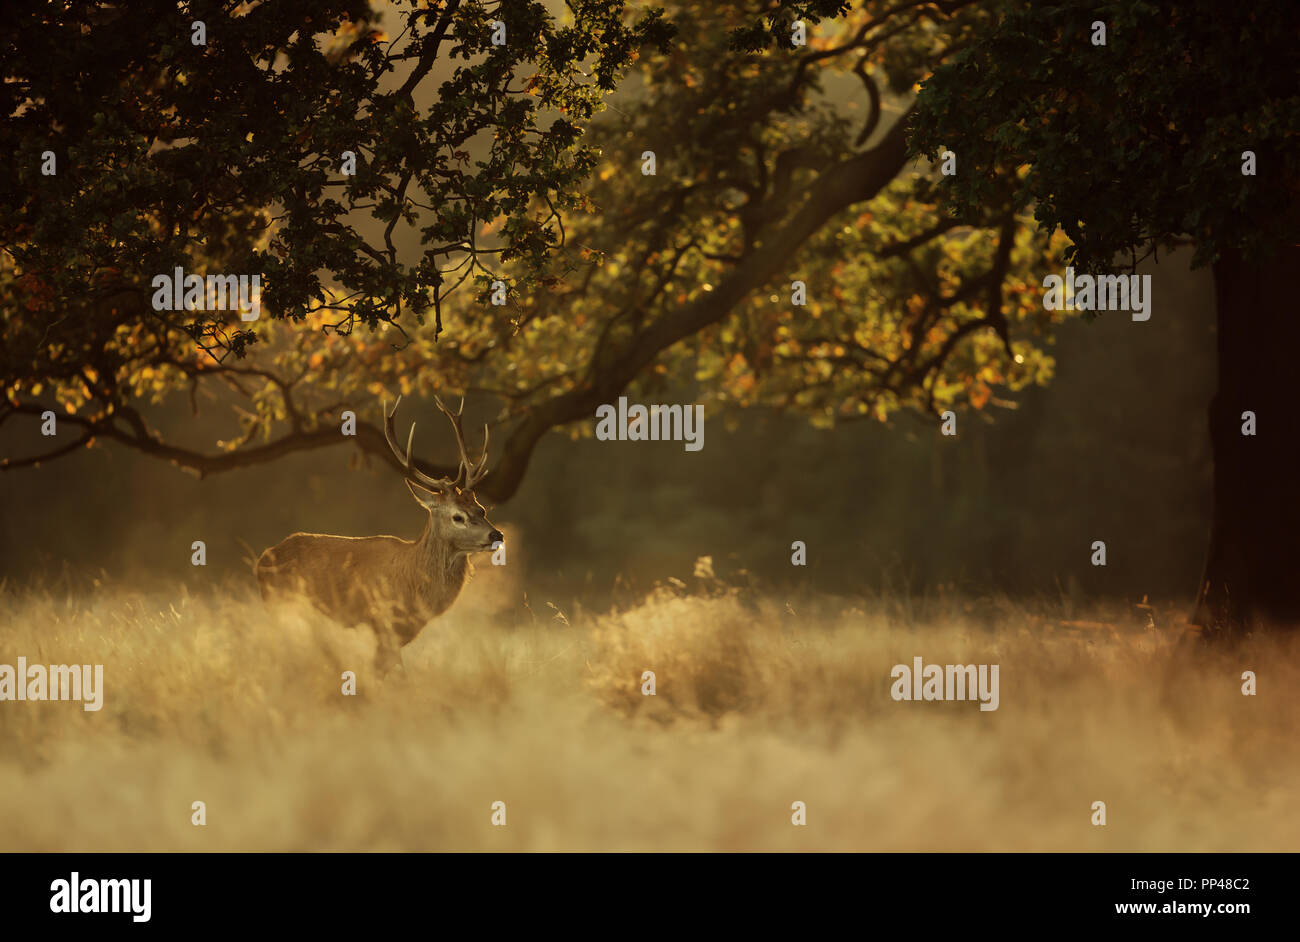 Red deer stag exhaling cold breath in early morning light, UK. - Stock Image